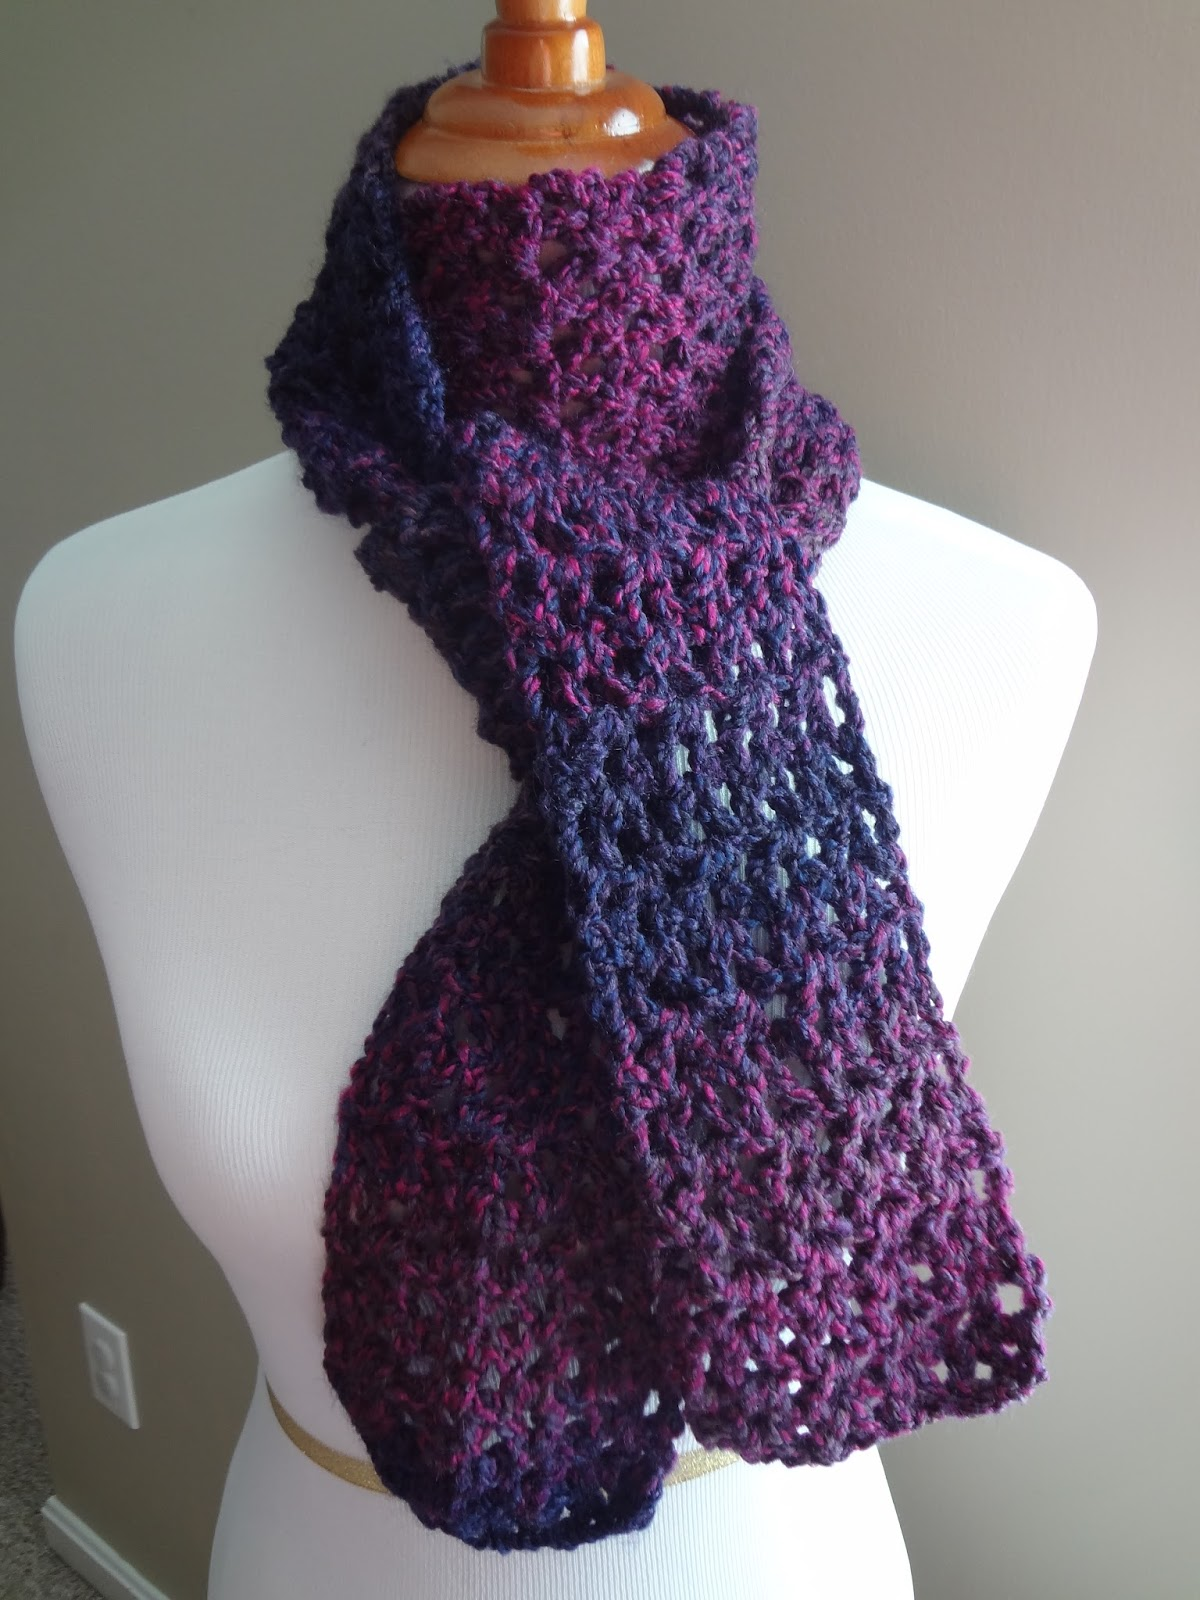 Crochet A Scarf : Fiber Flux: Free Crochet Pattern...Blueberry Pie Scarf!